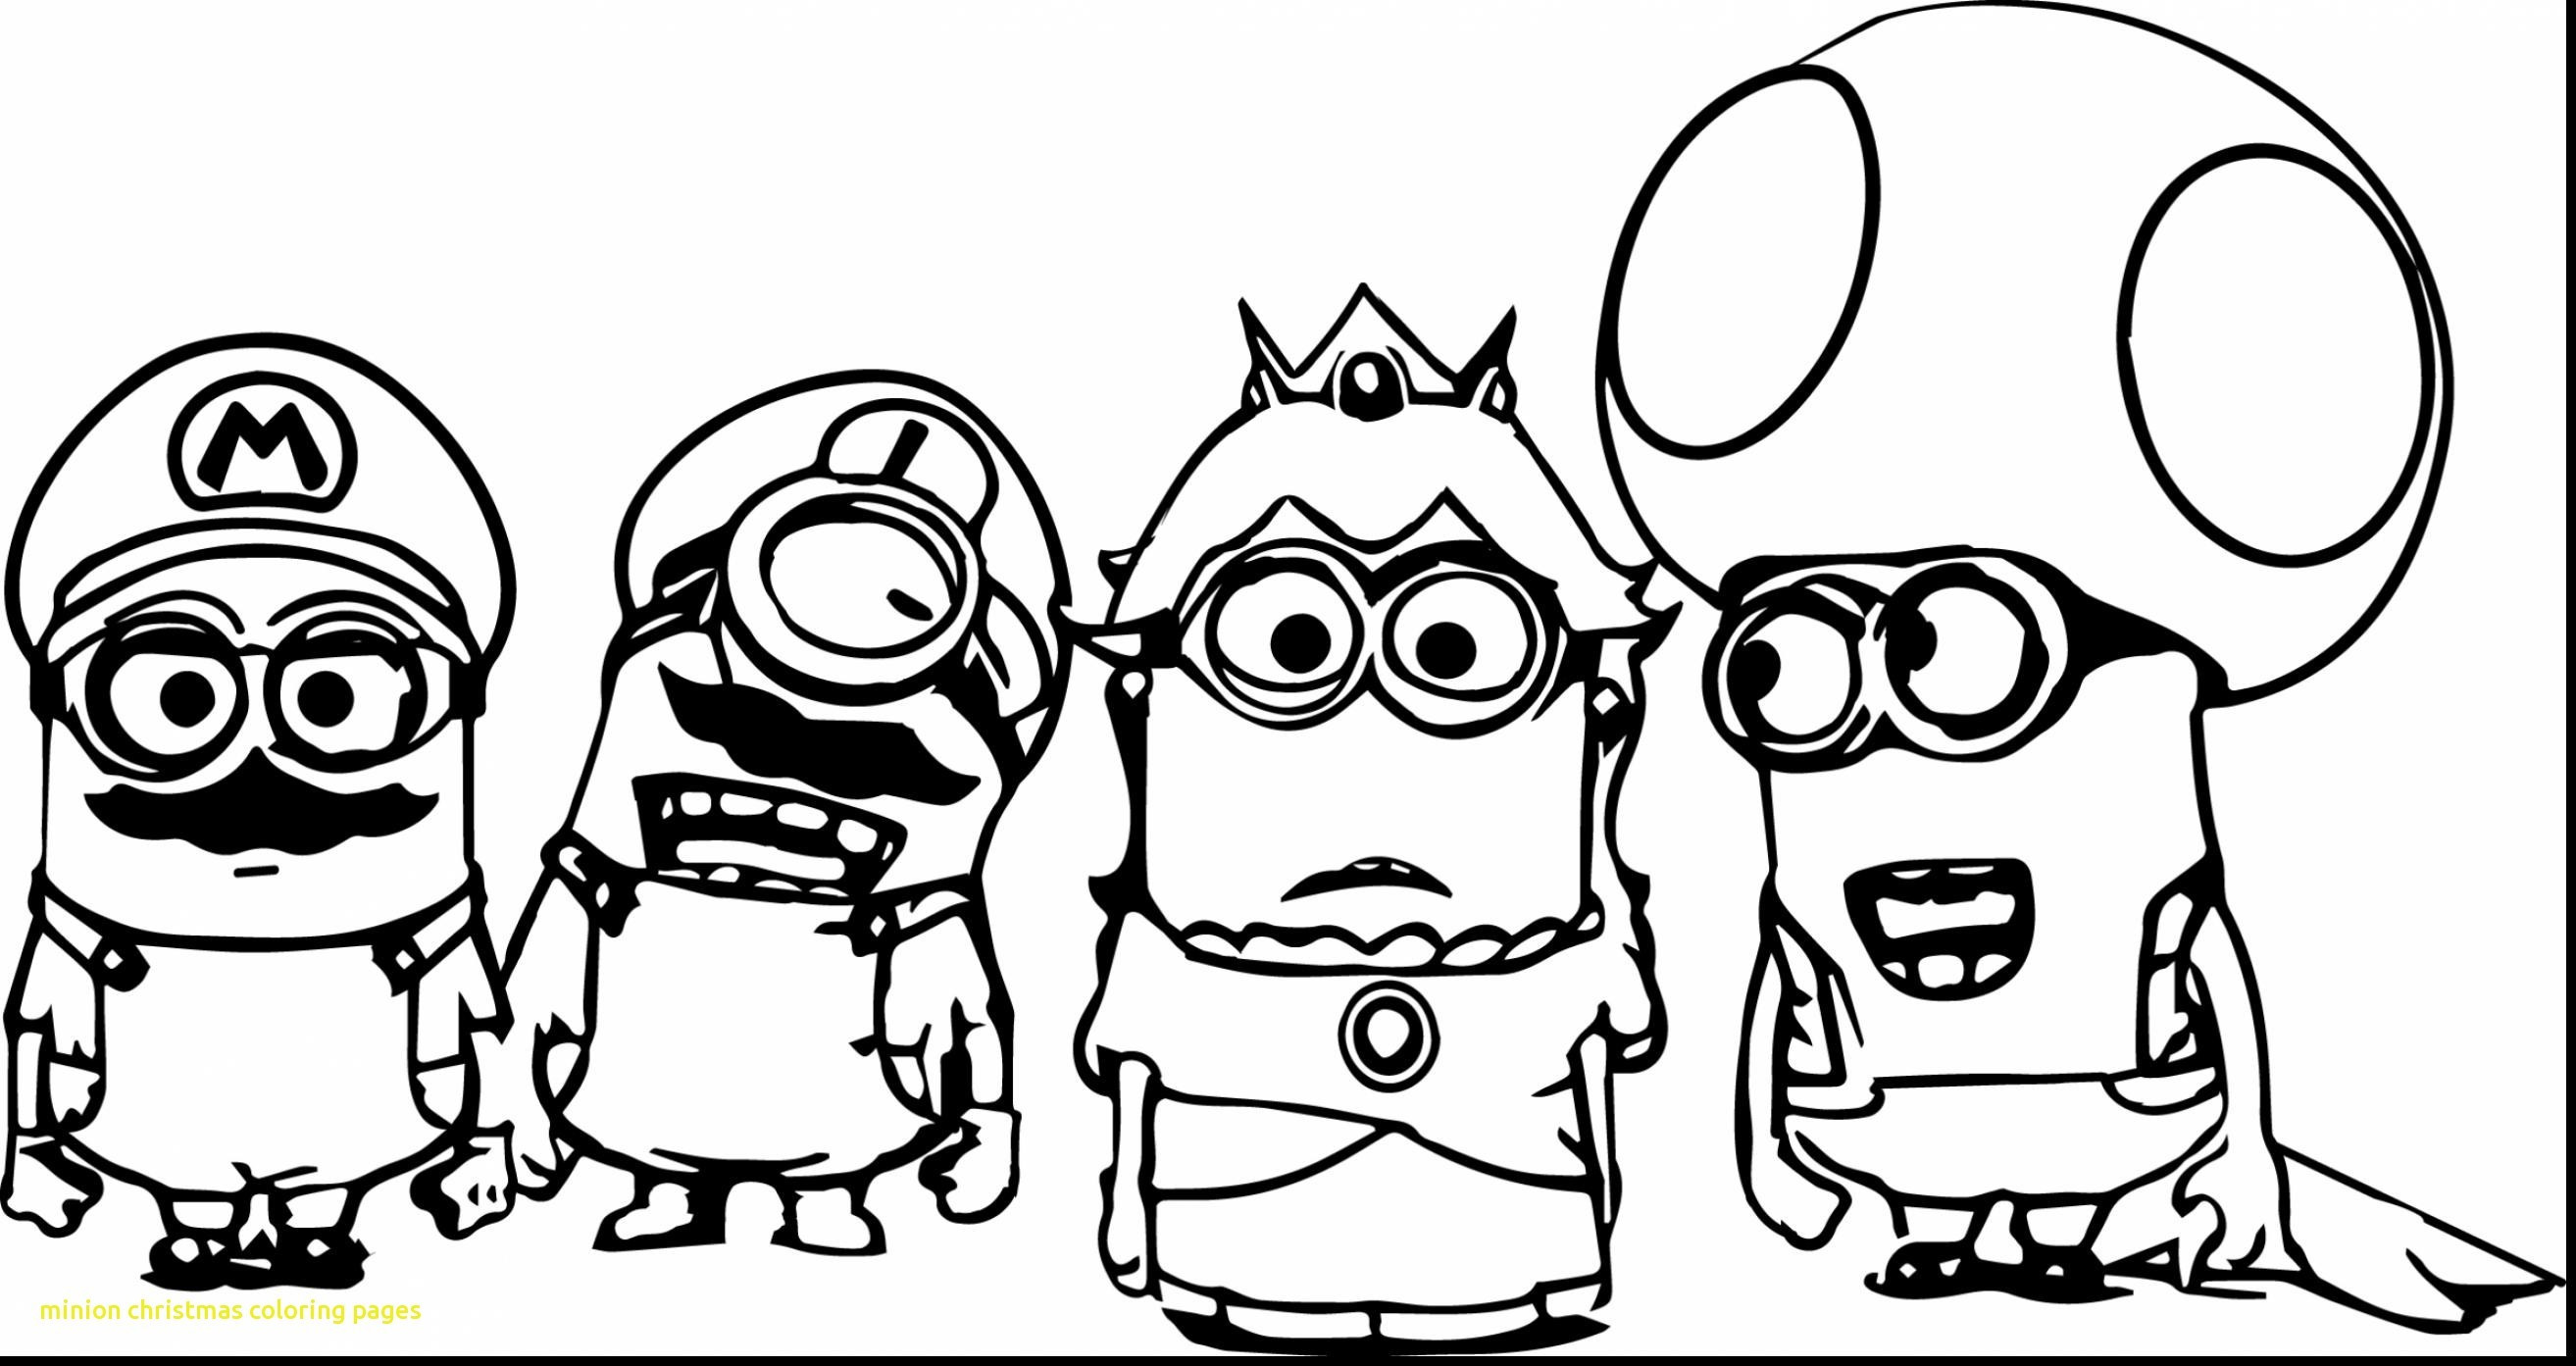 Christmas Coloring Pages Minion With Collection Of Minions Halloween Download Them And